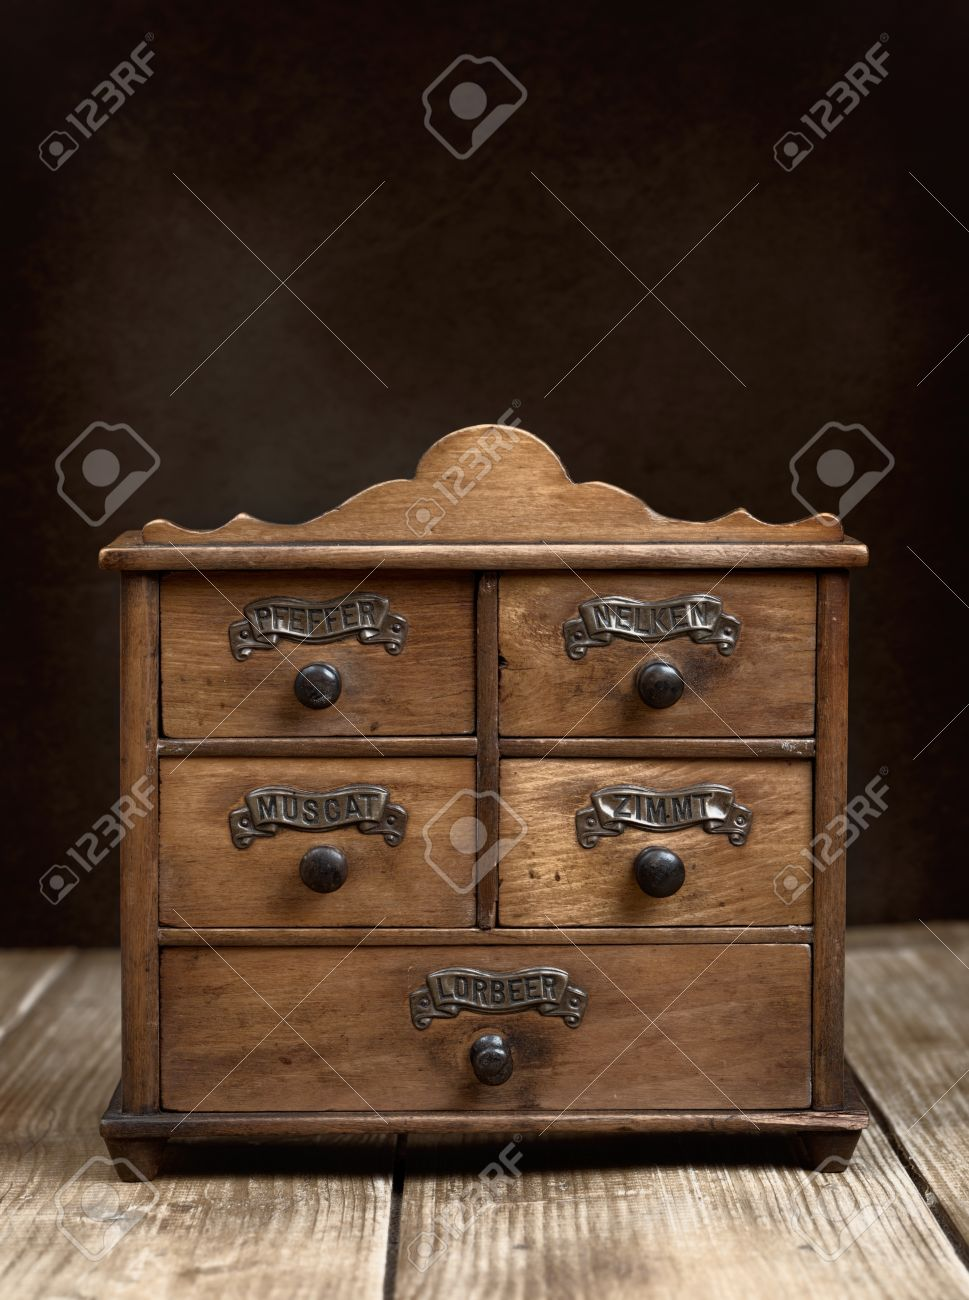 Stock Photo - Vintage spice cabinet on rustic wooden table - Vintage Spice Cabinet On Rustic Wooden Table Stock Photo, Picture